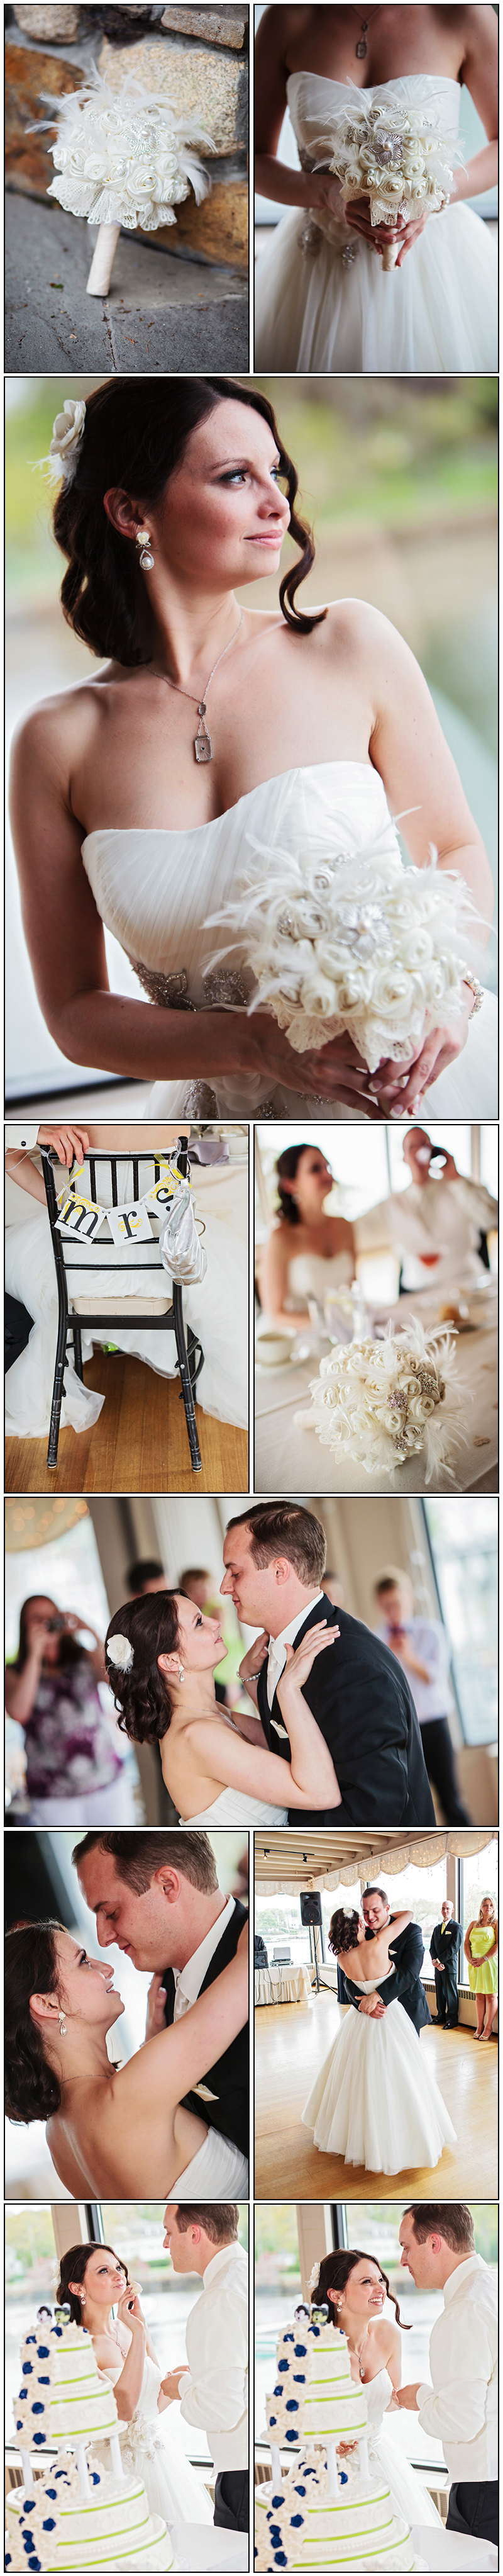 WEDDING PHOTOGRAPHY NEW ENGLAND